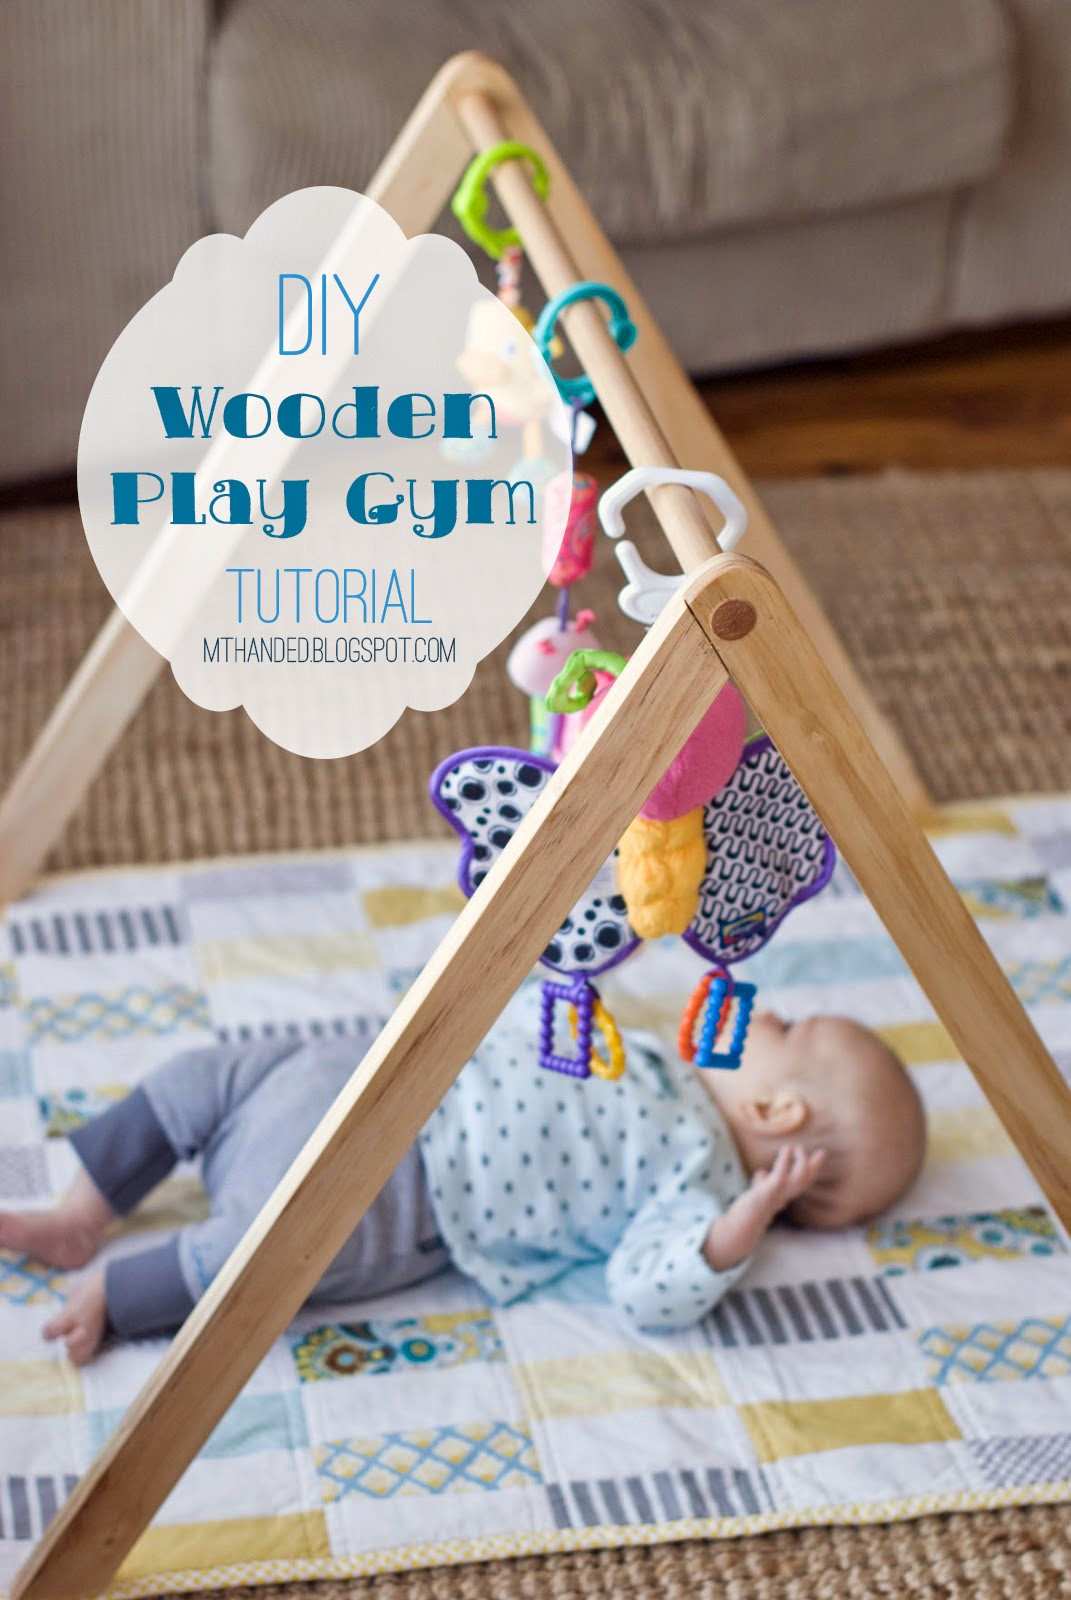 Cute Wooden Baby Gym To Diy Children Baby Kinderzimmer Baby Getting Ready For A Baby 22 Diy Projects To Craft For